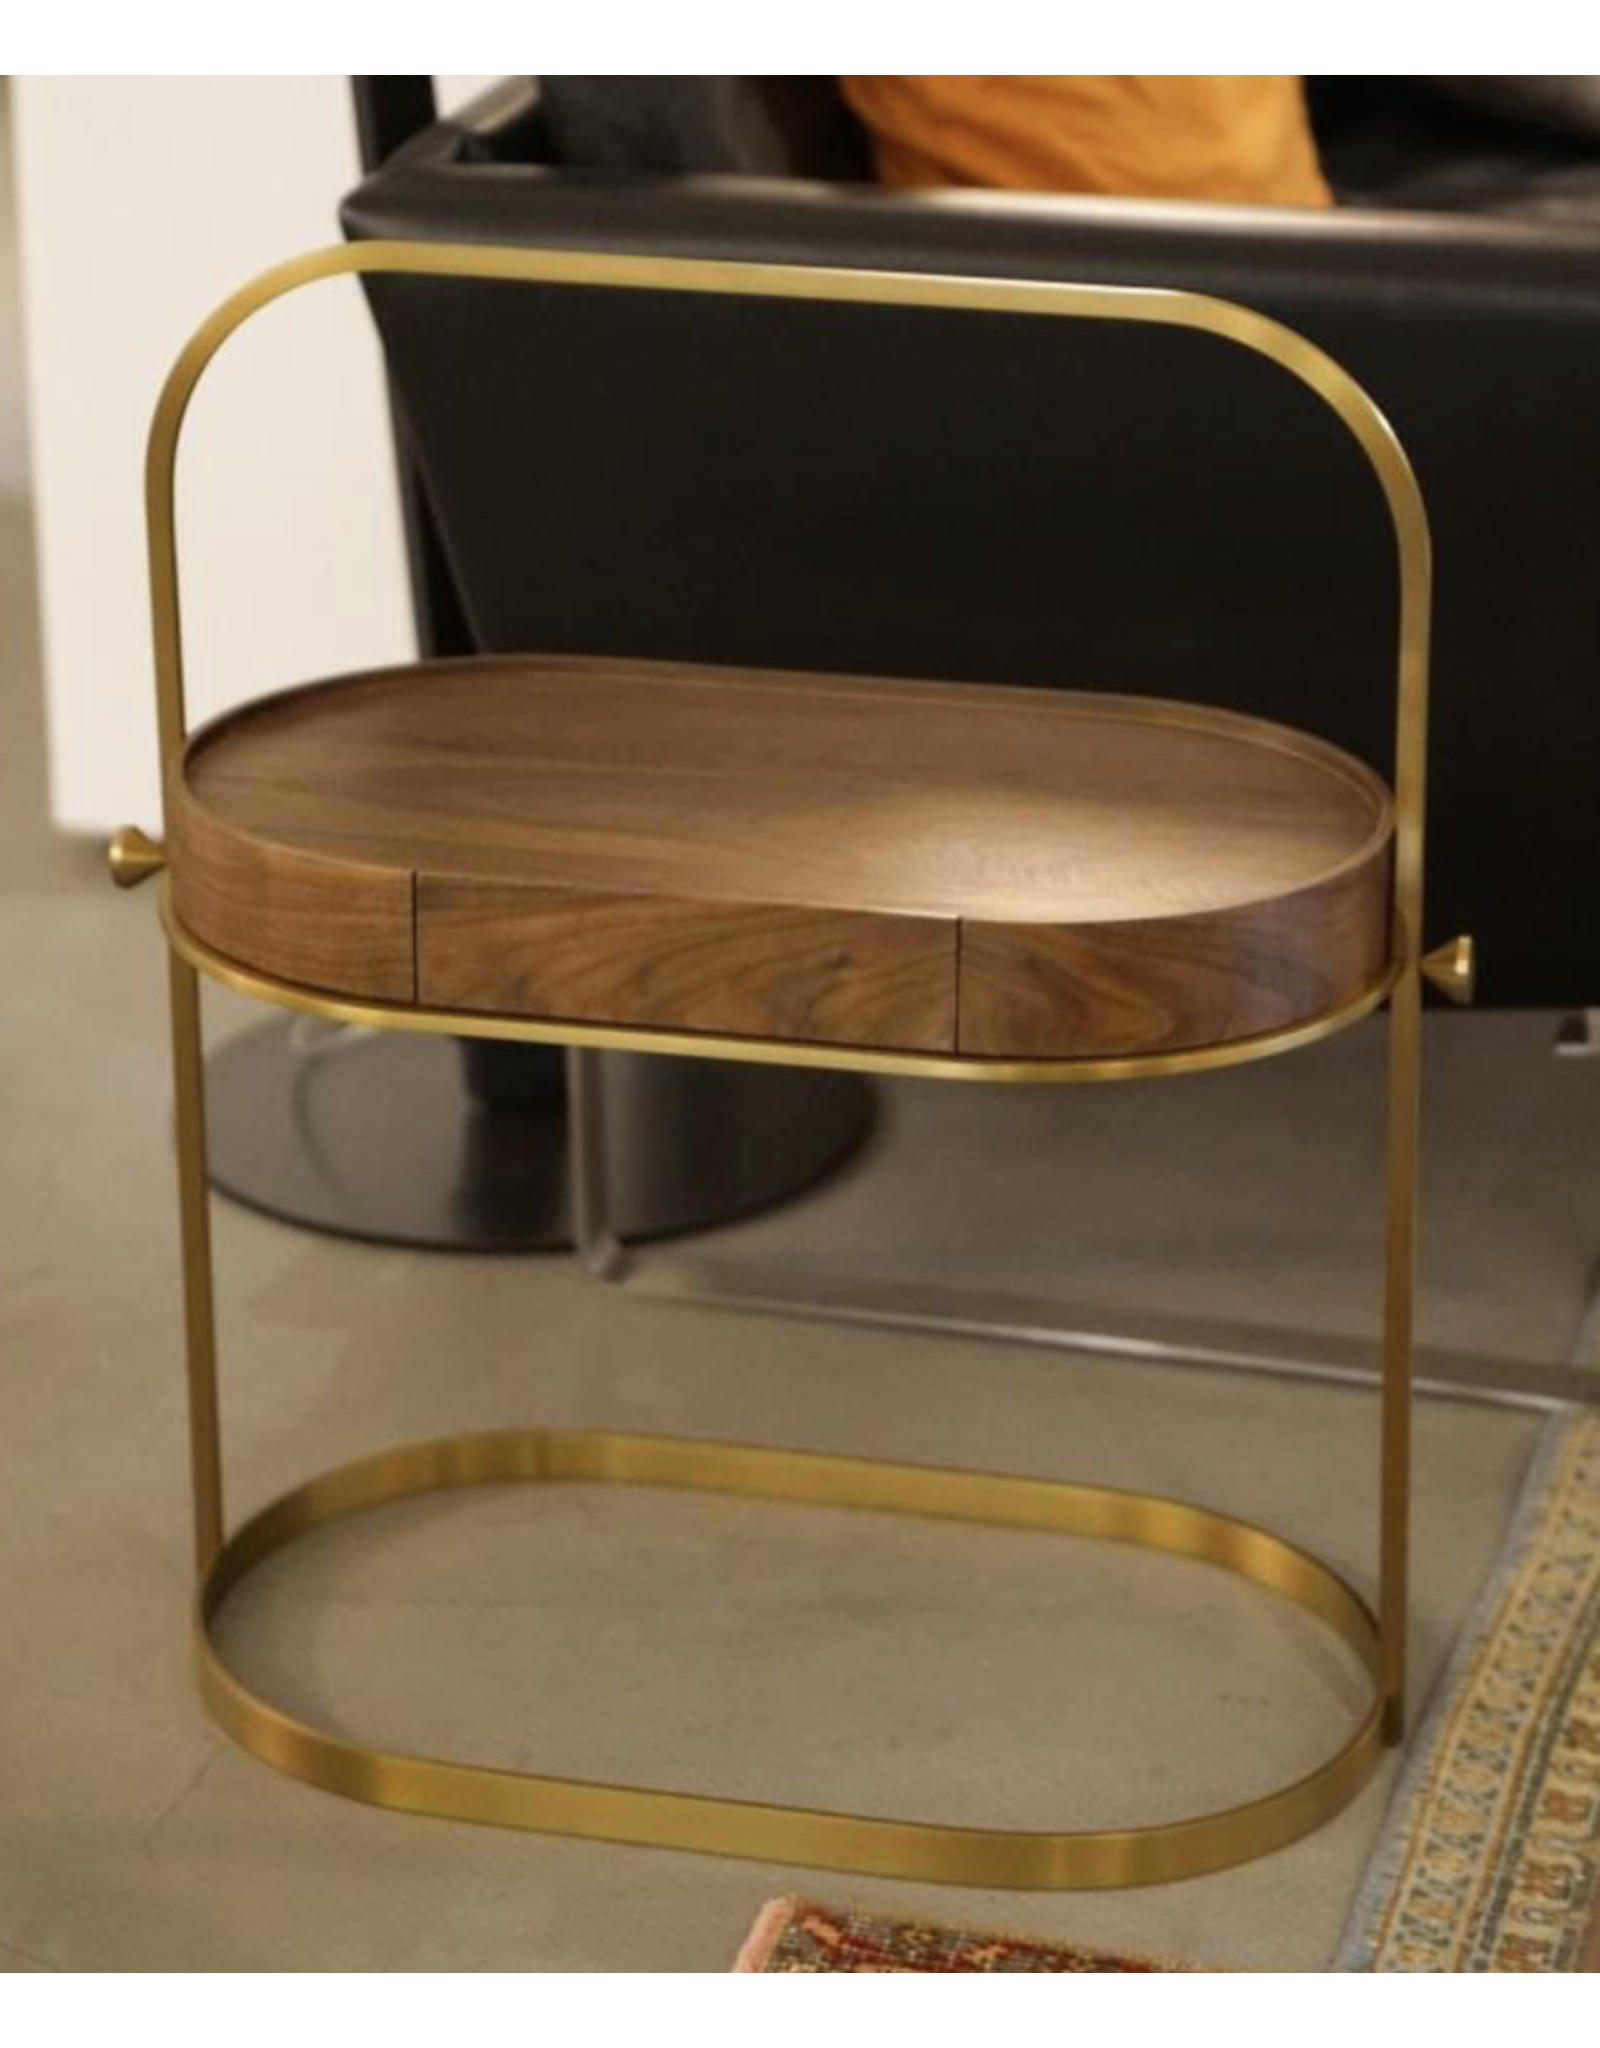 URBANCRAFT YUAN BED SIDE TABLE